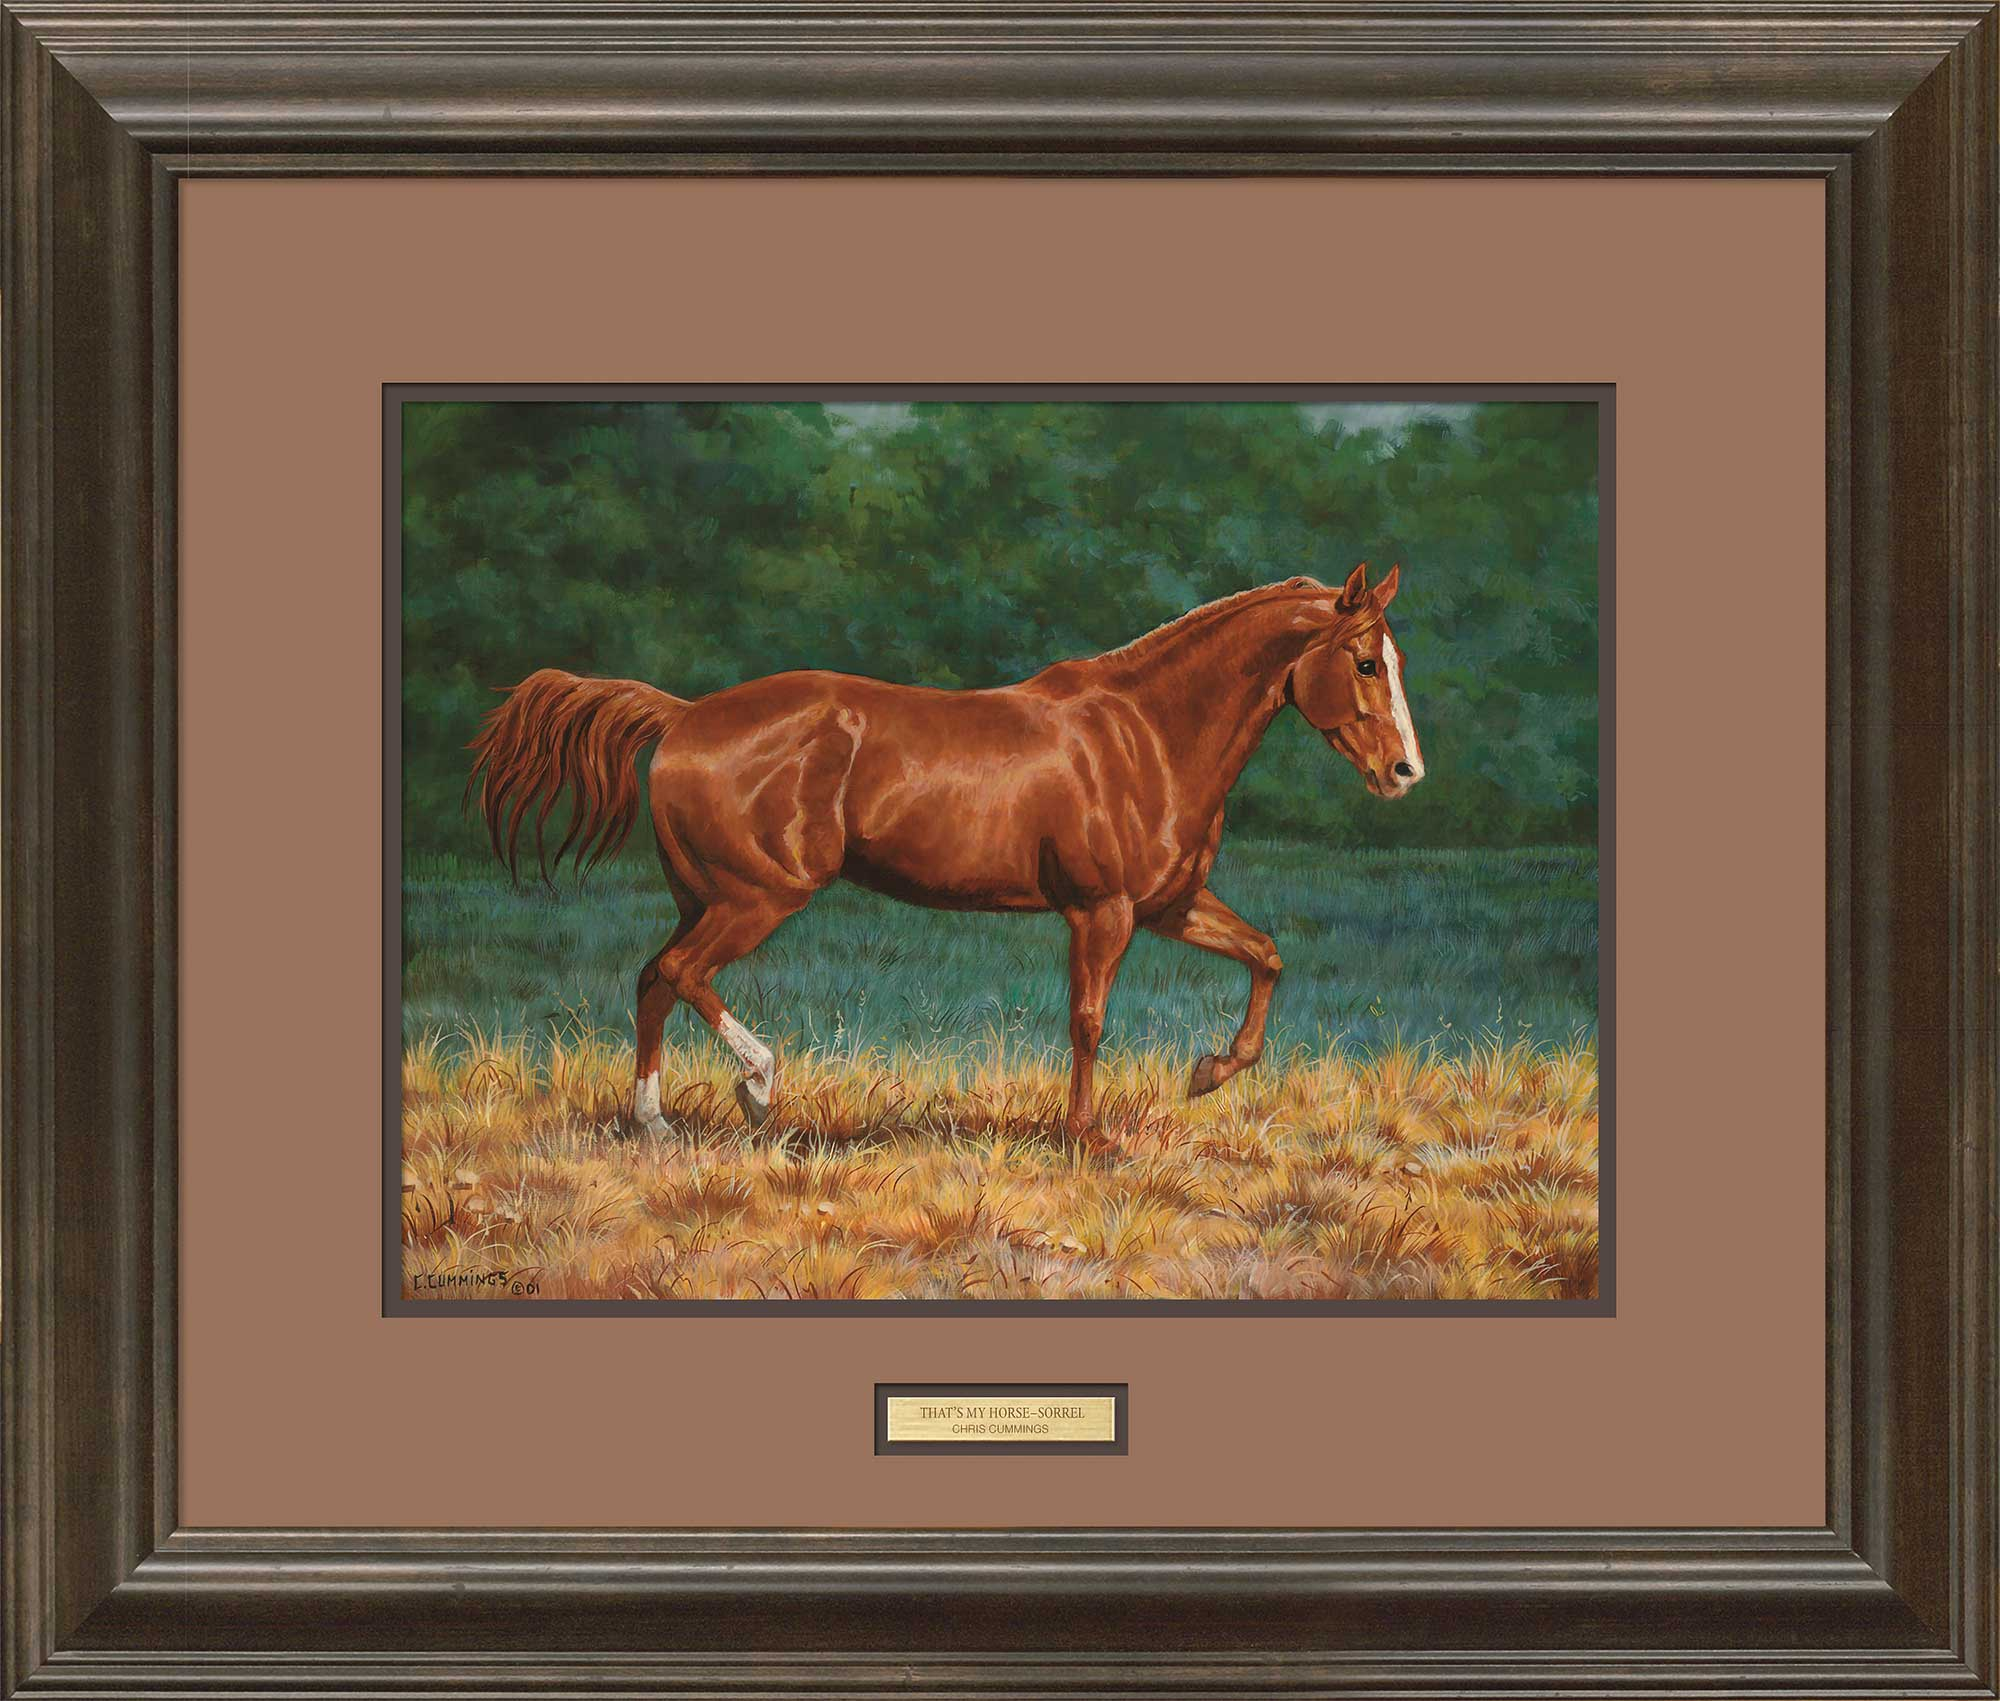 Horse Art; Quarter Horse-Sorrel Framed Print by C. Cummings | Wild Wings